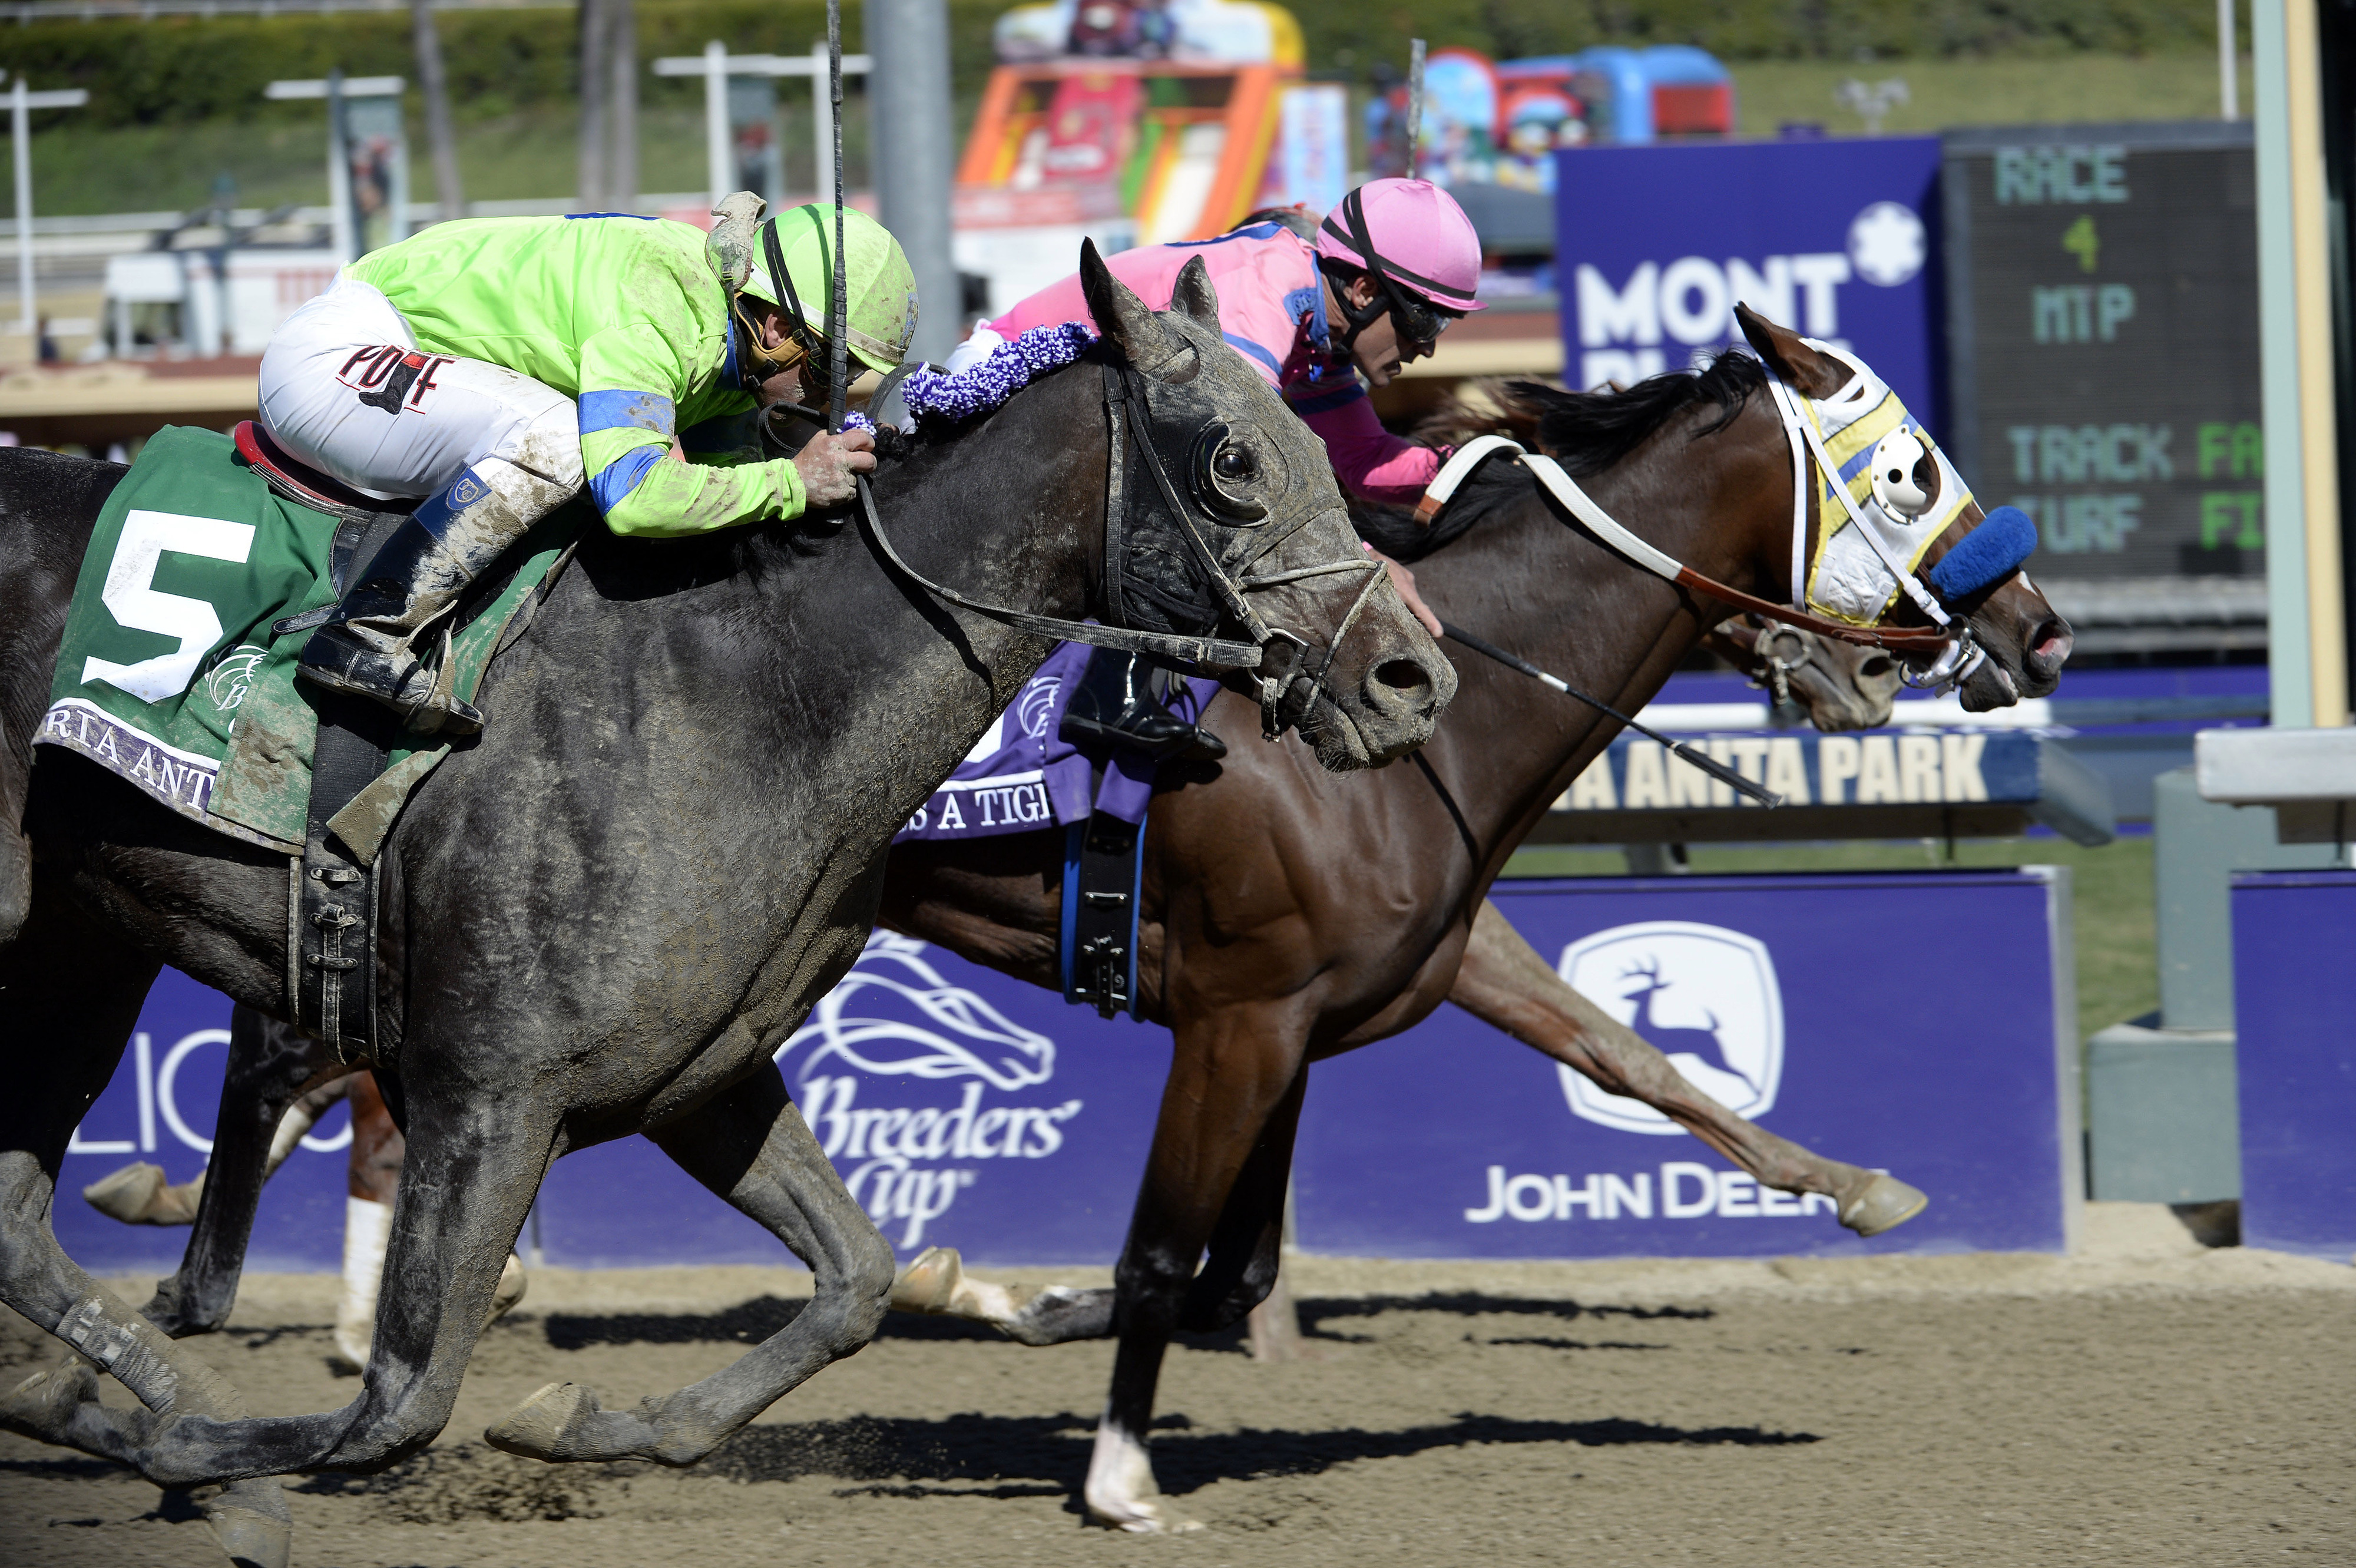 Breeders' Cup Juvenile Fillies winner Ria Antonia (left) makes her 2014 debut in Saturday's Rachel Alexandra Stakes at the Fair Grounds.